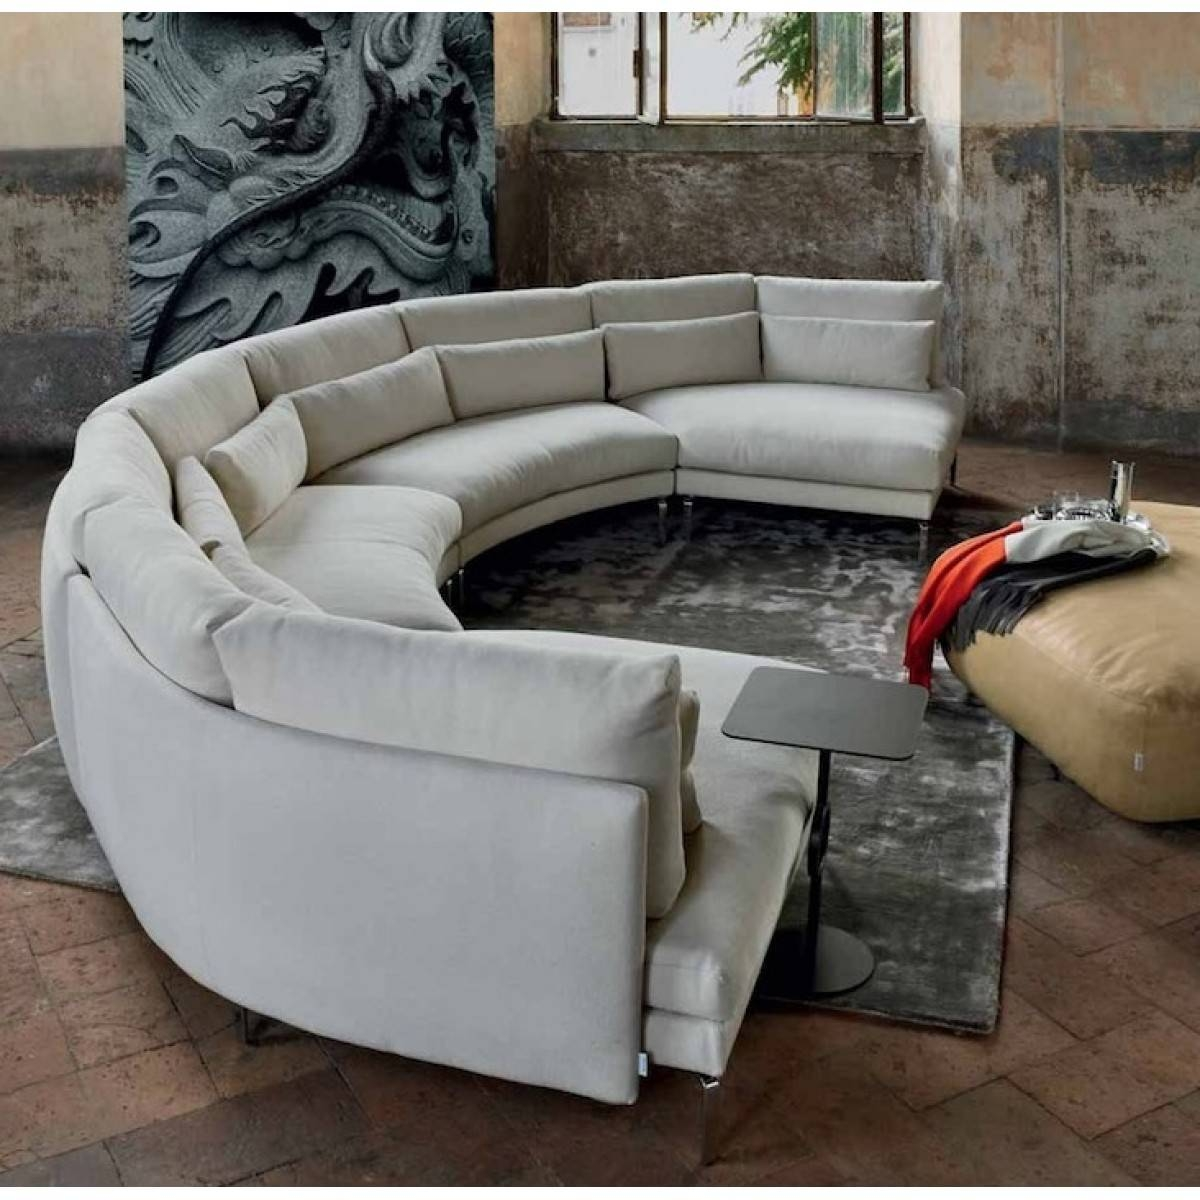 Sofa Design Ideas: Half Semi Circular Sofa Tables In Sale With for Semicircular Sofa (Image 27 of 30)